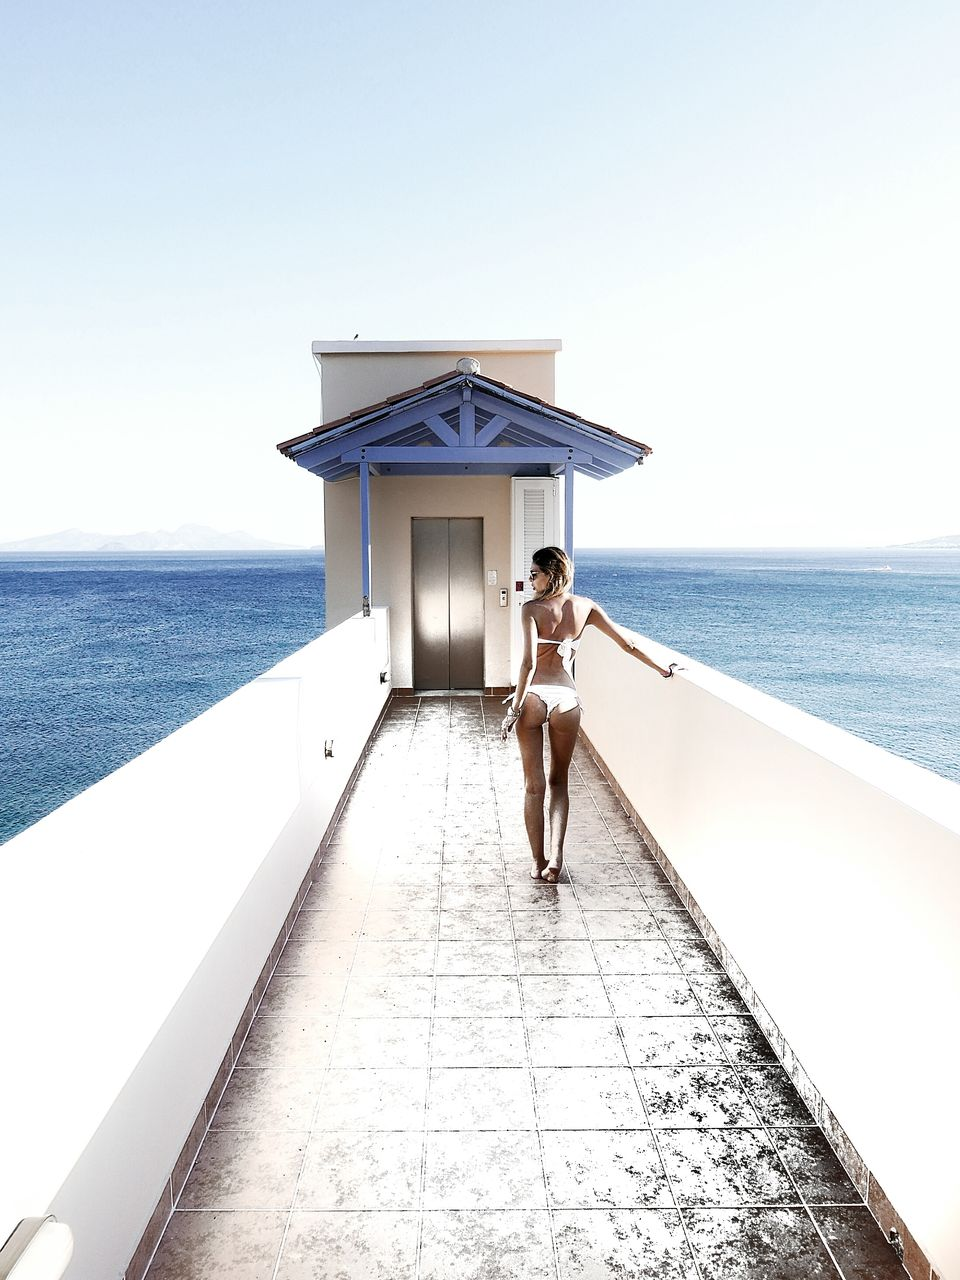 Rear view of seductive woman standing on pier over sea